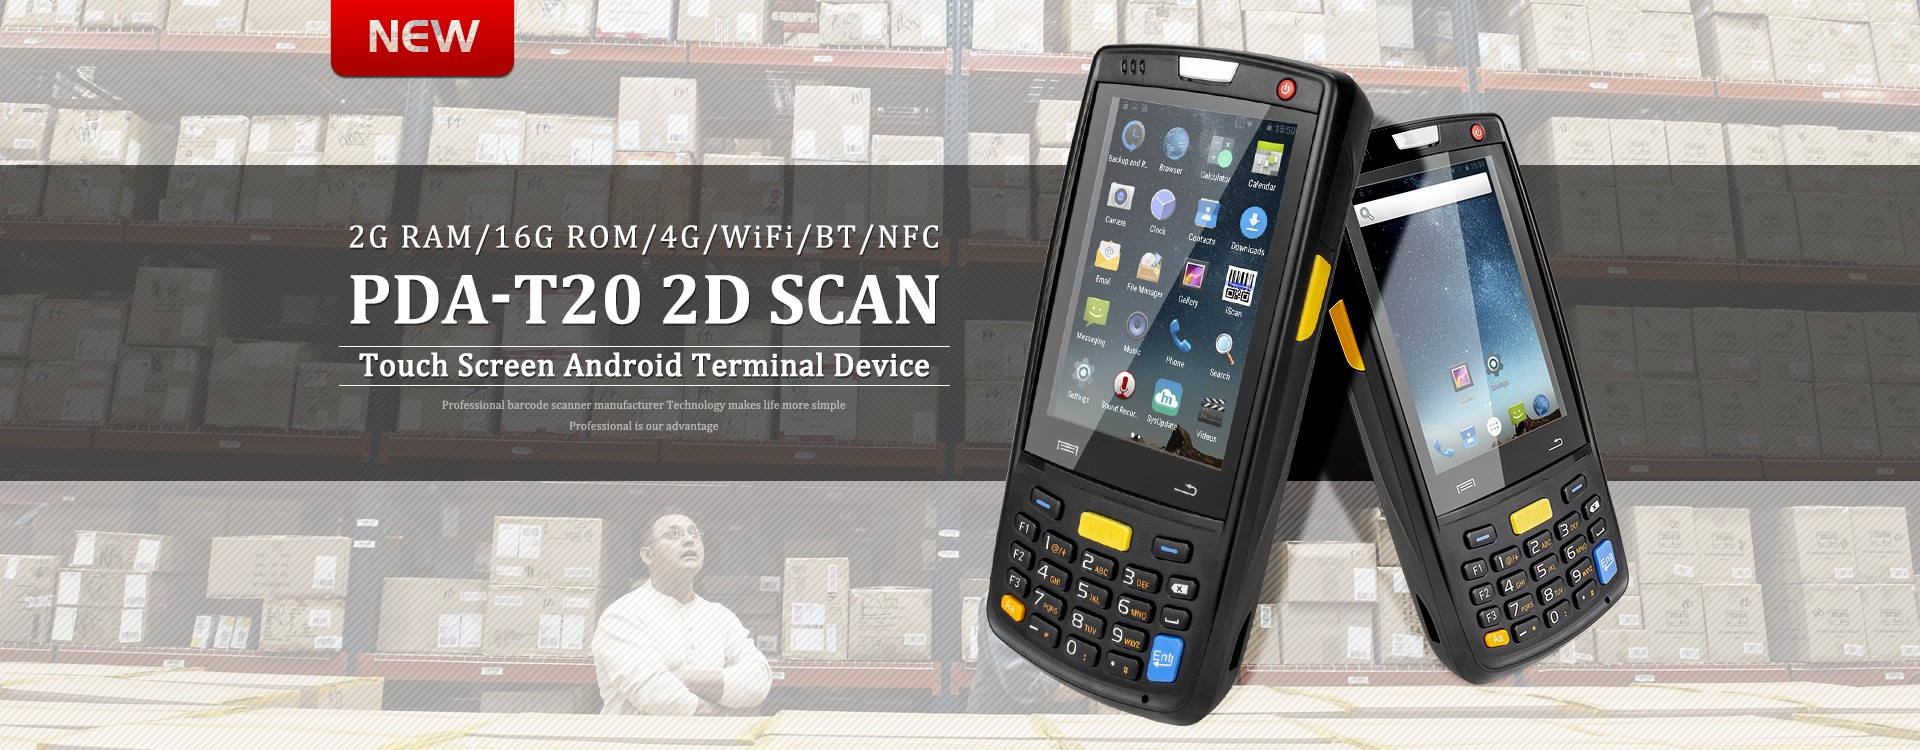 1D CCD Wired Barcode Scanner